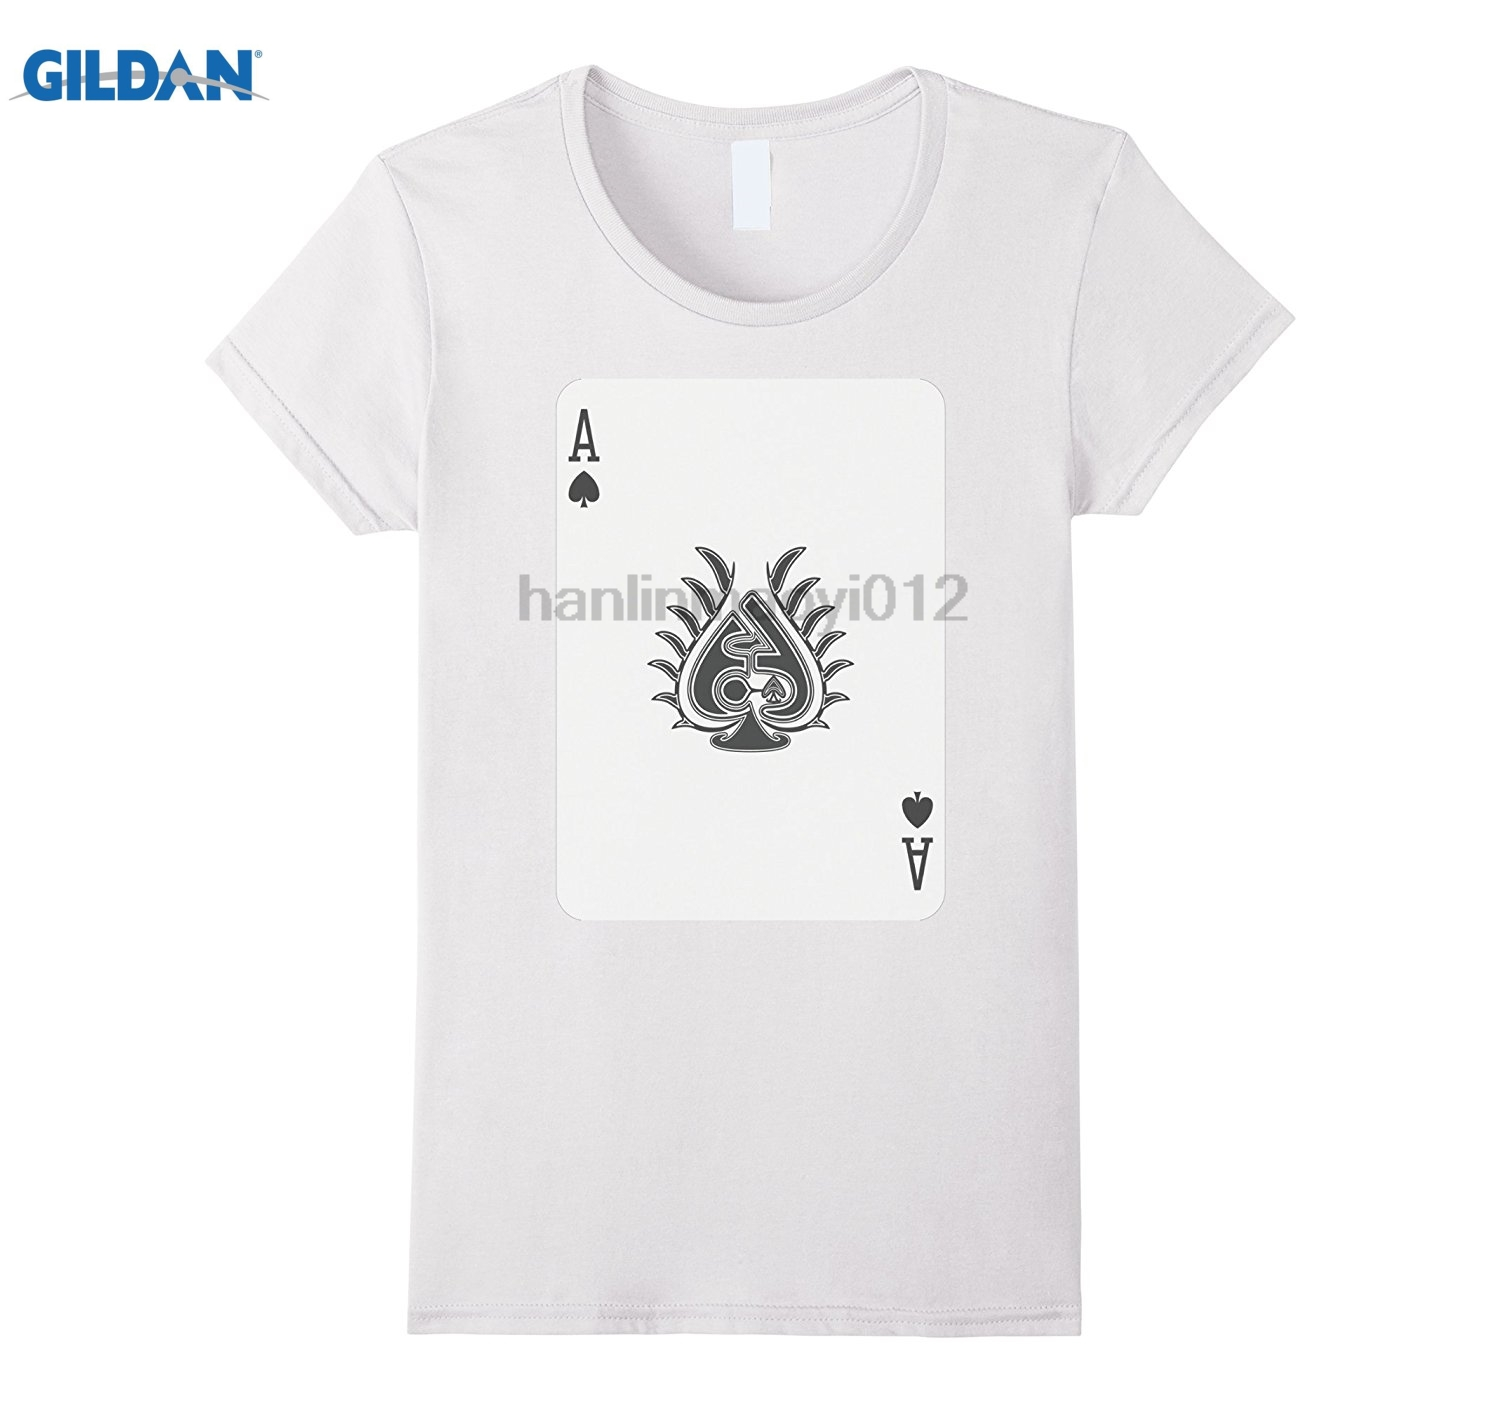 GILDAN Ace Spades T-Shirt Play Win Poker Lucky Player Luck Costume Cotton round neck jud ...